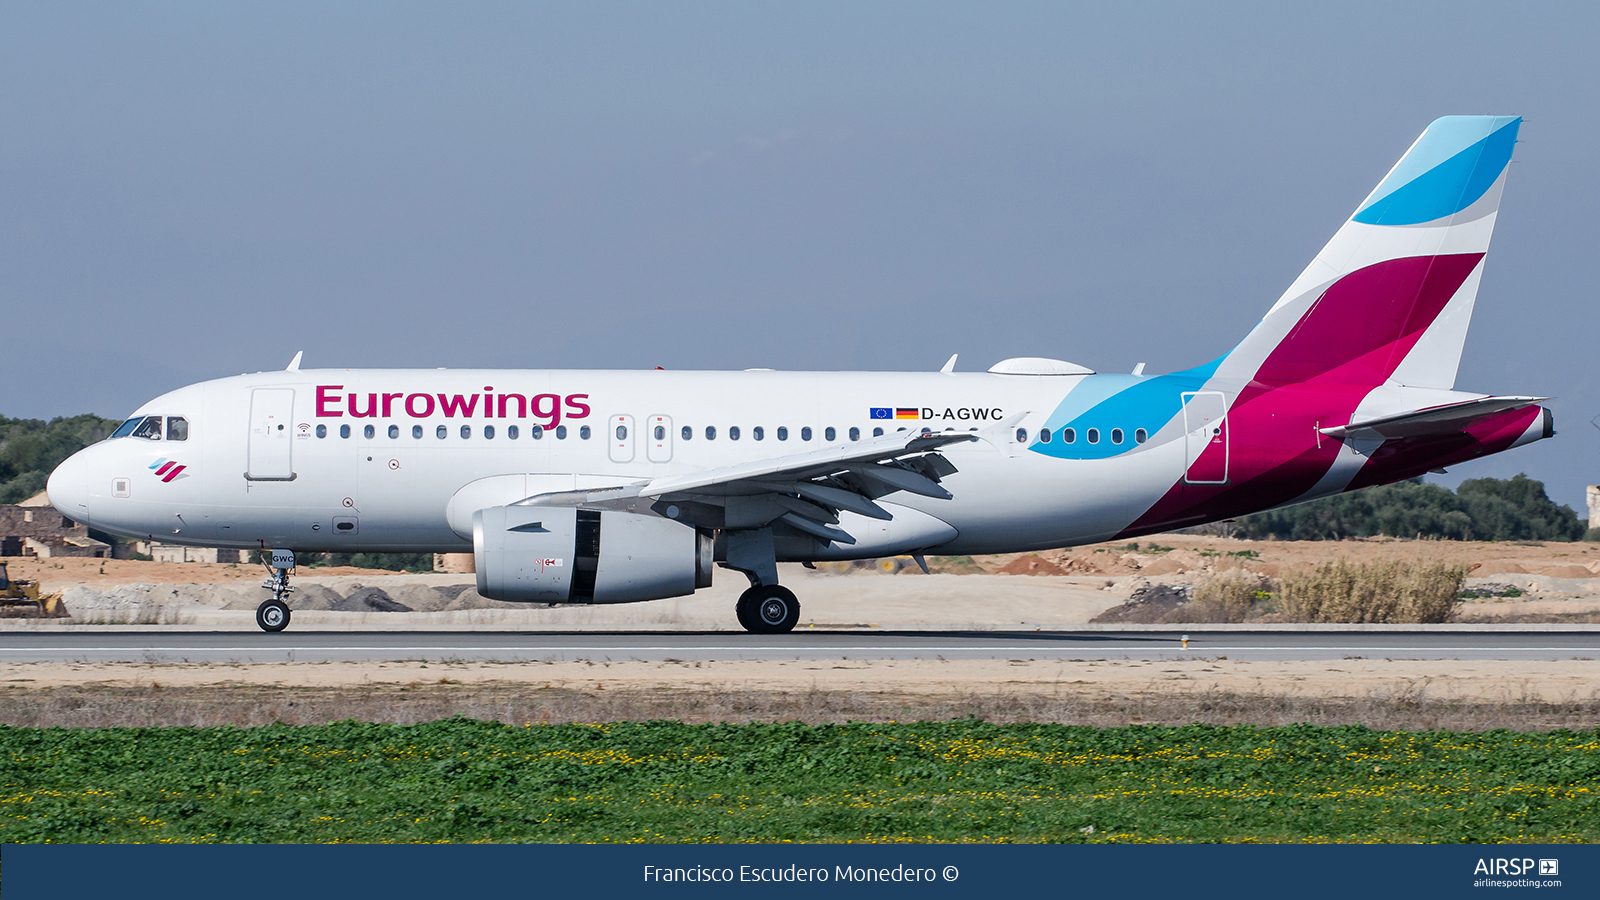 Eurowings  Airbus A319  D-AGWC